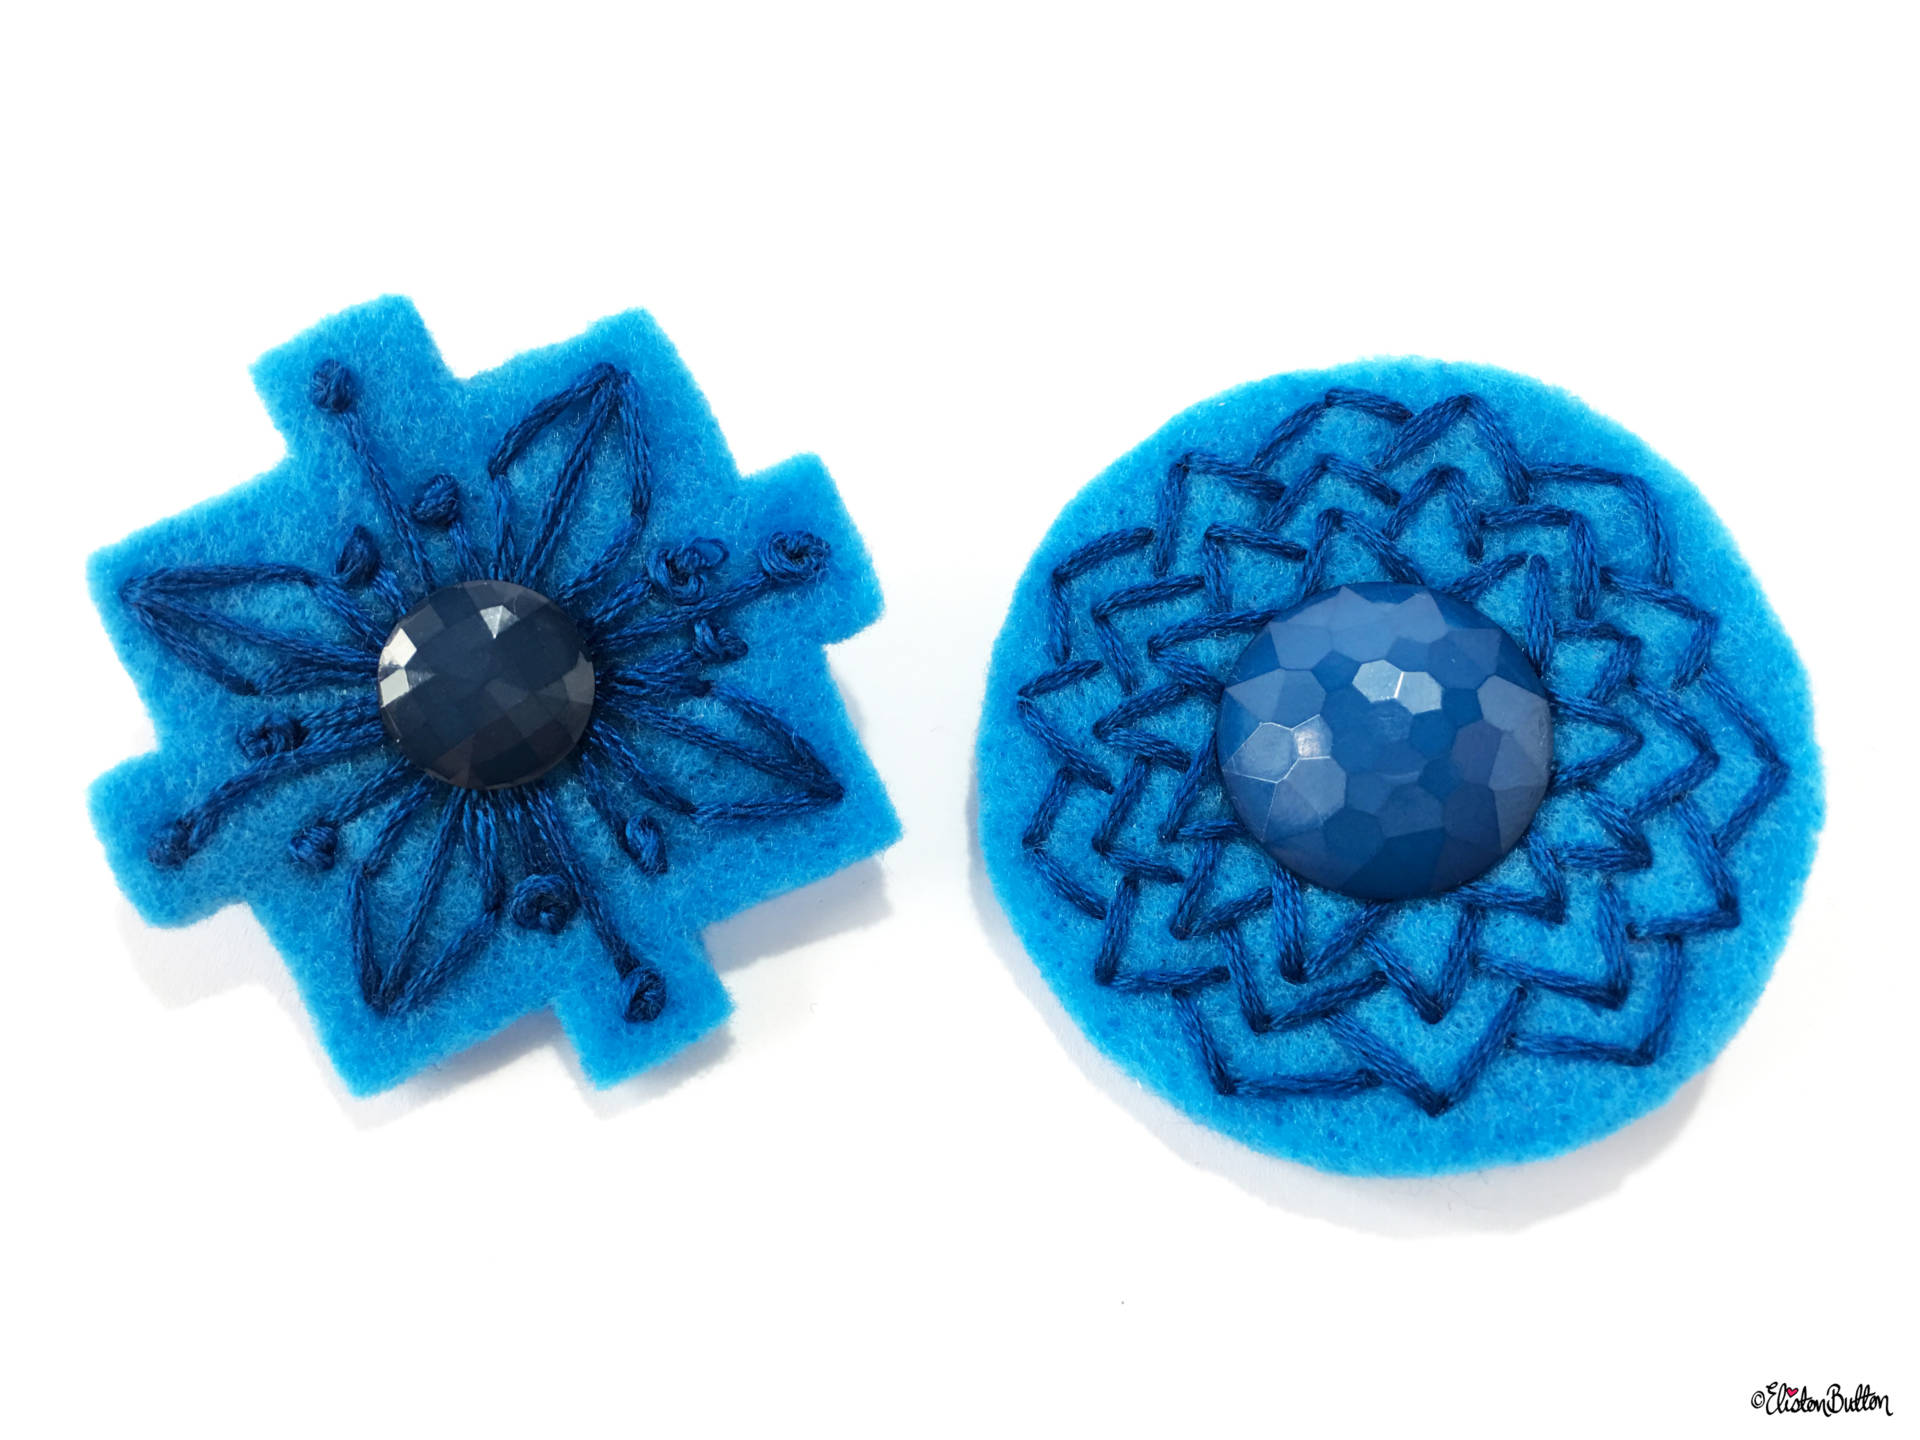 Blue and Teal Embroidered Felt Lapel Pins - Set of 2 - Create 30 - No. 5, 6, & 7 - Embroidered Felt Lapel Pins at www.elistonbutton.com - Eliston Button - That Crafty Kid – Art, Design, Craft & Adventure.